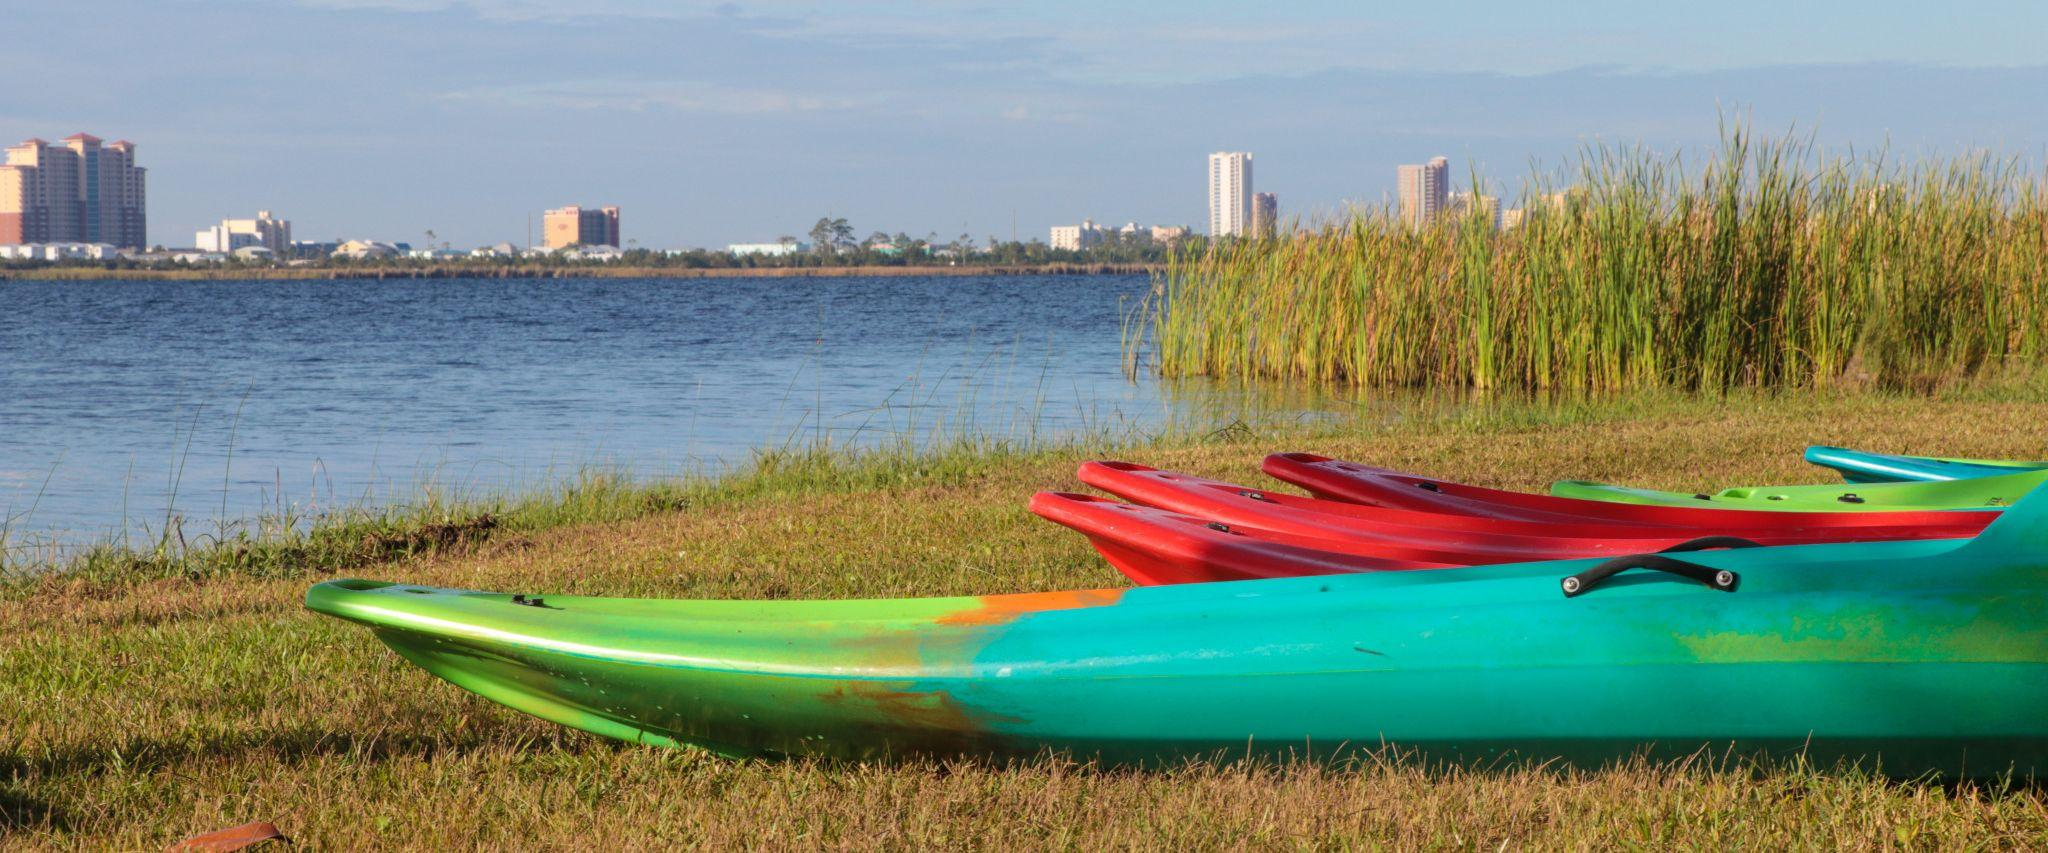 Kayaks at Gulf State Park in Gulf Shores, AL